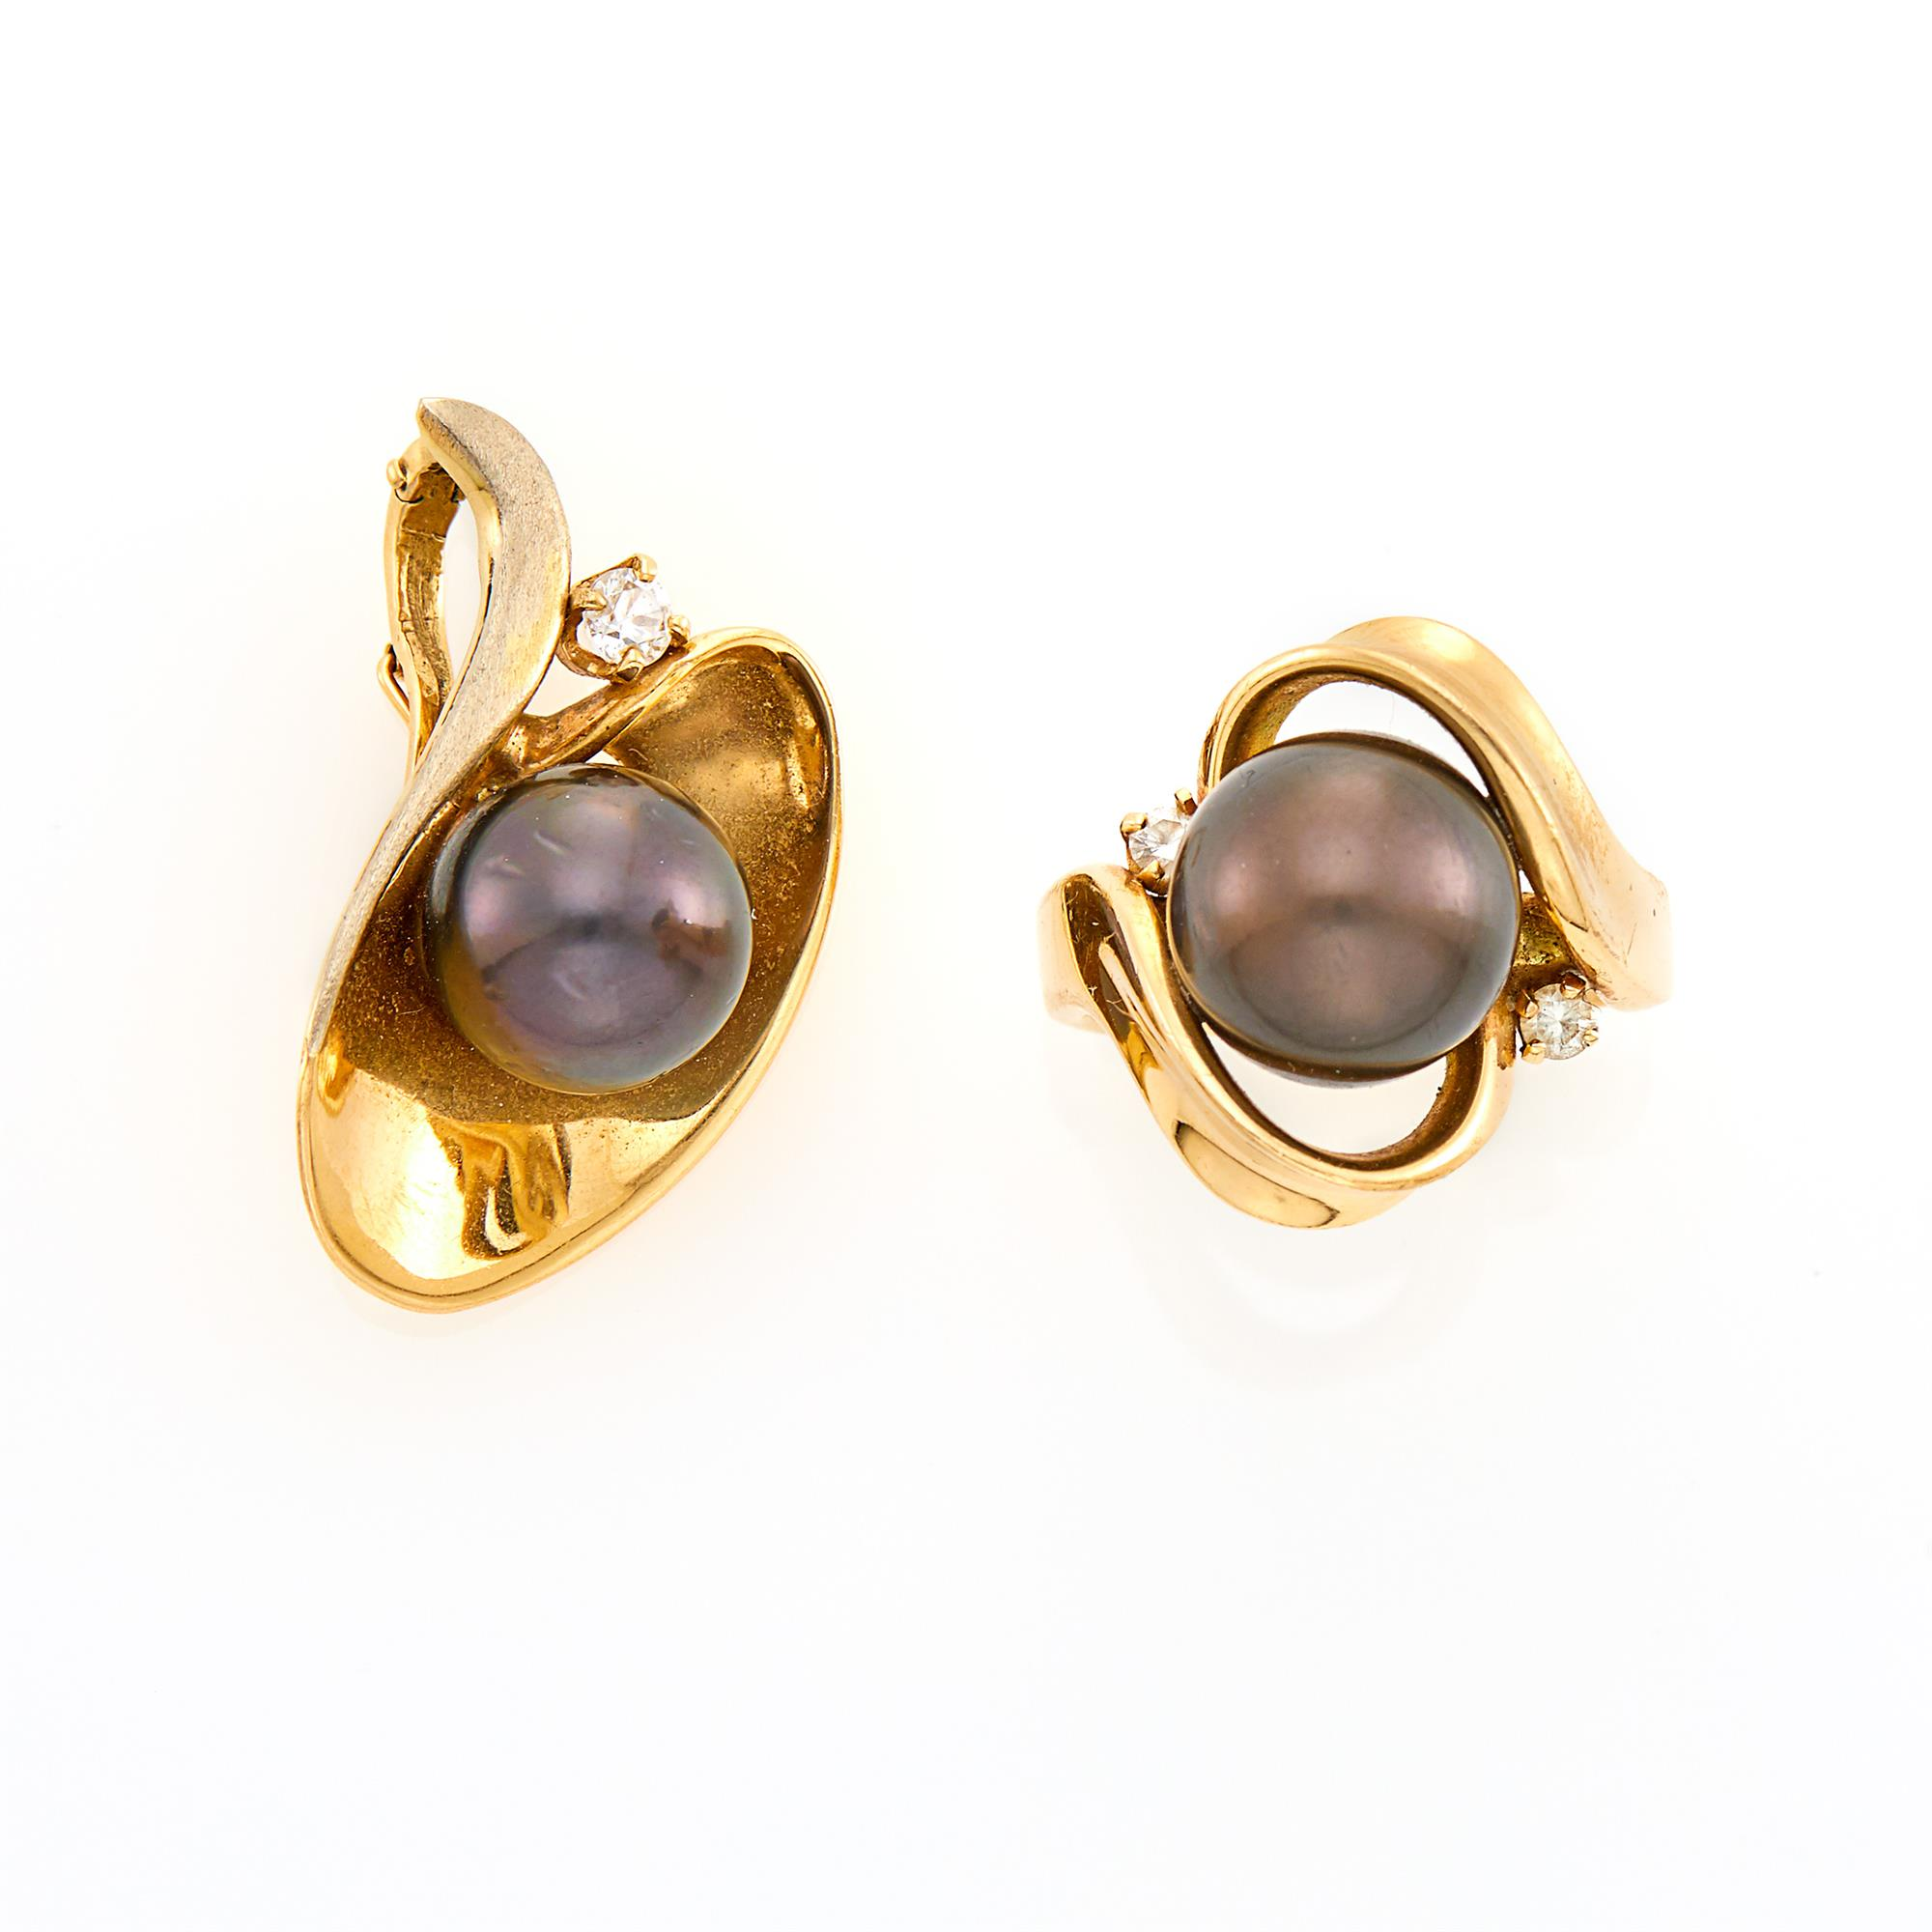 Lot image - Gold, Dyed Black Cultured Pearl and Diamond Ring and Pendant